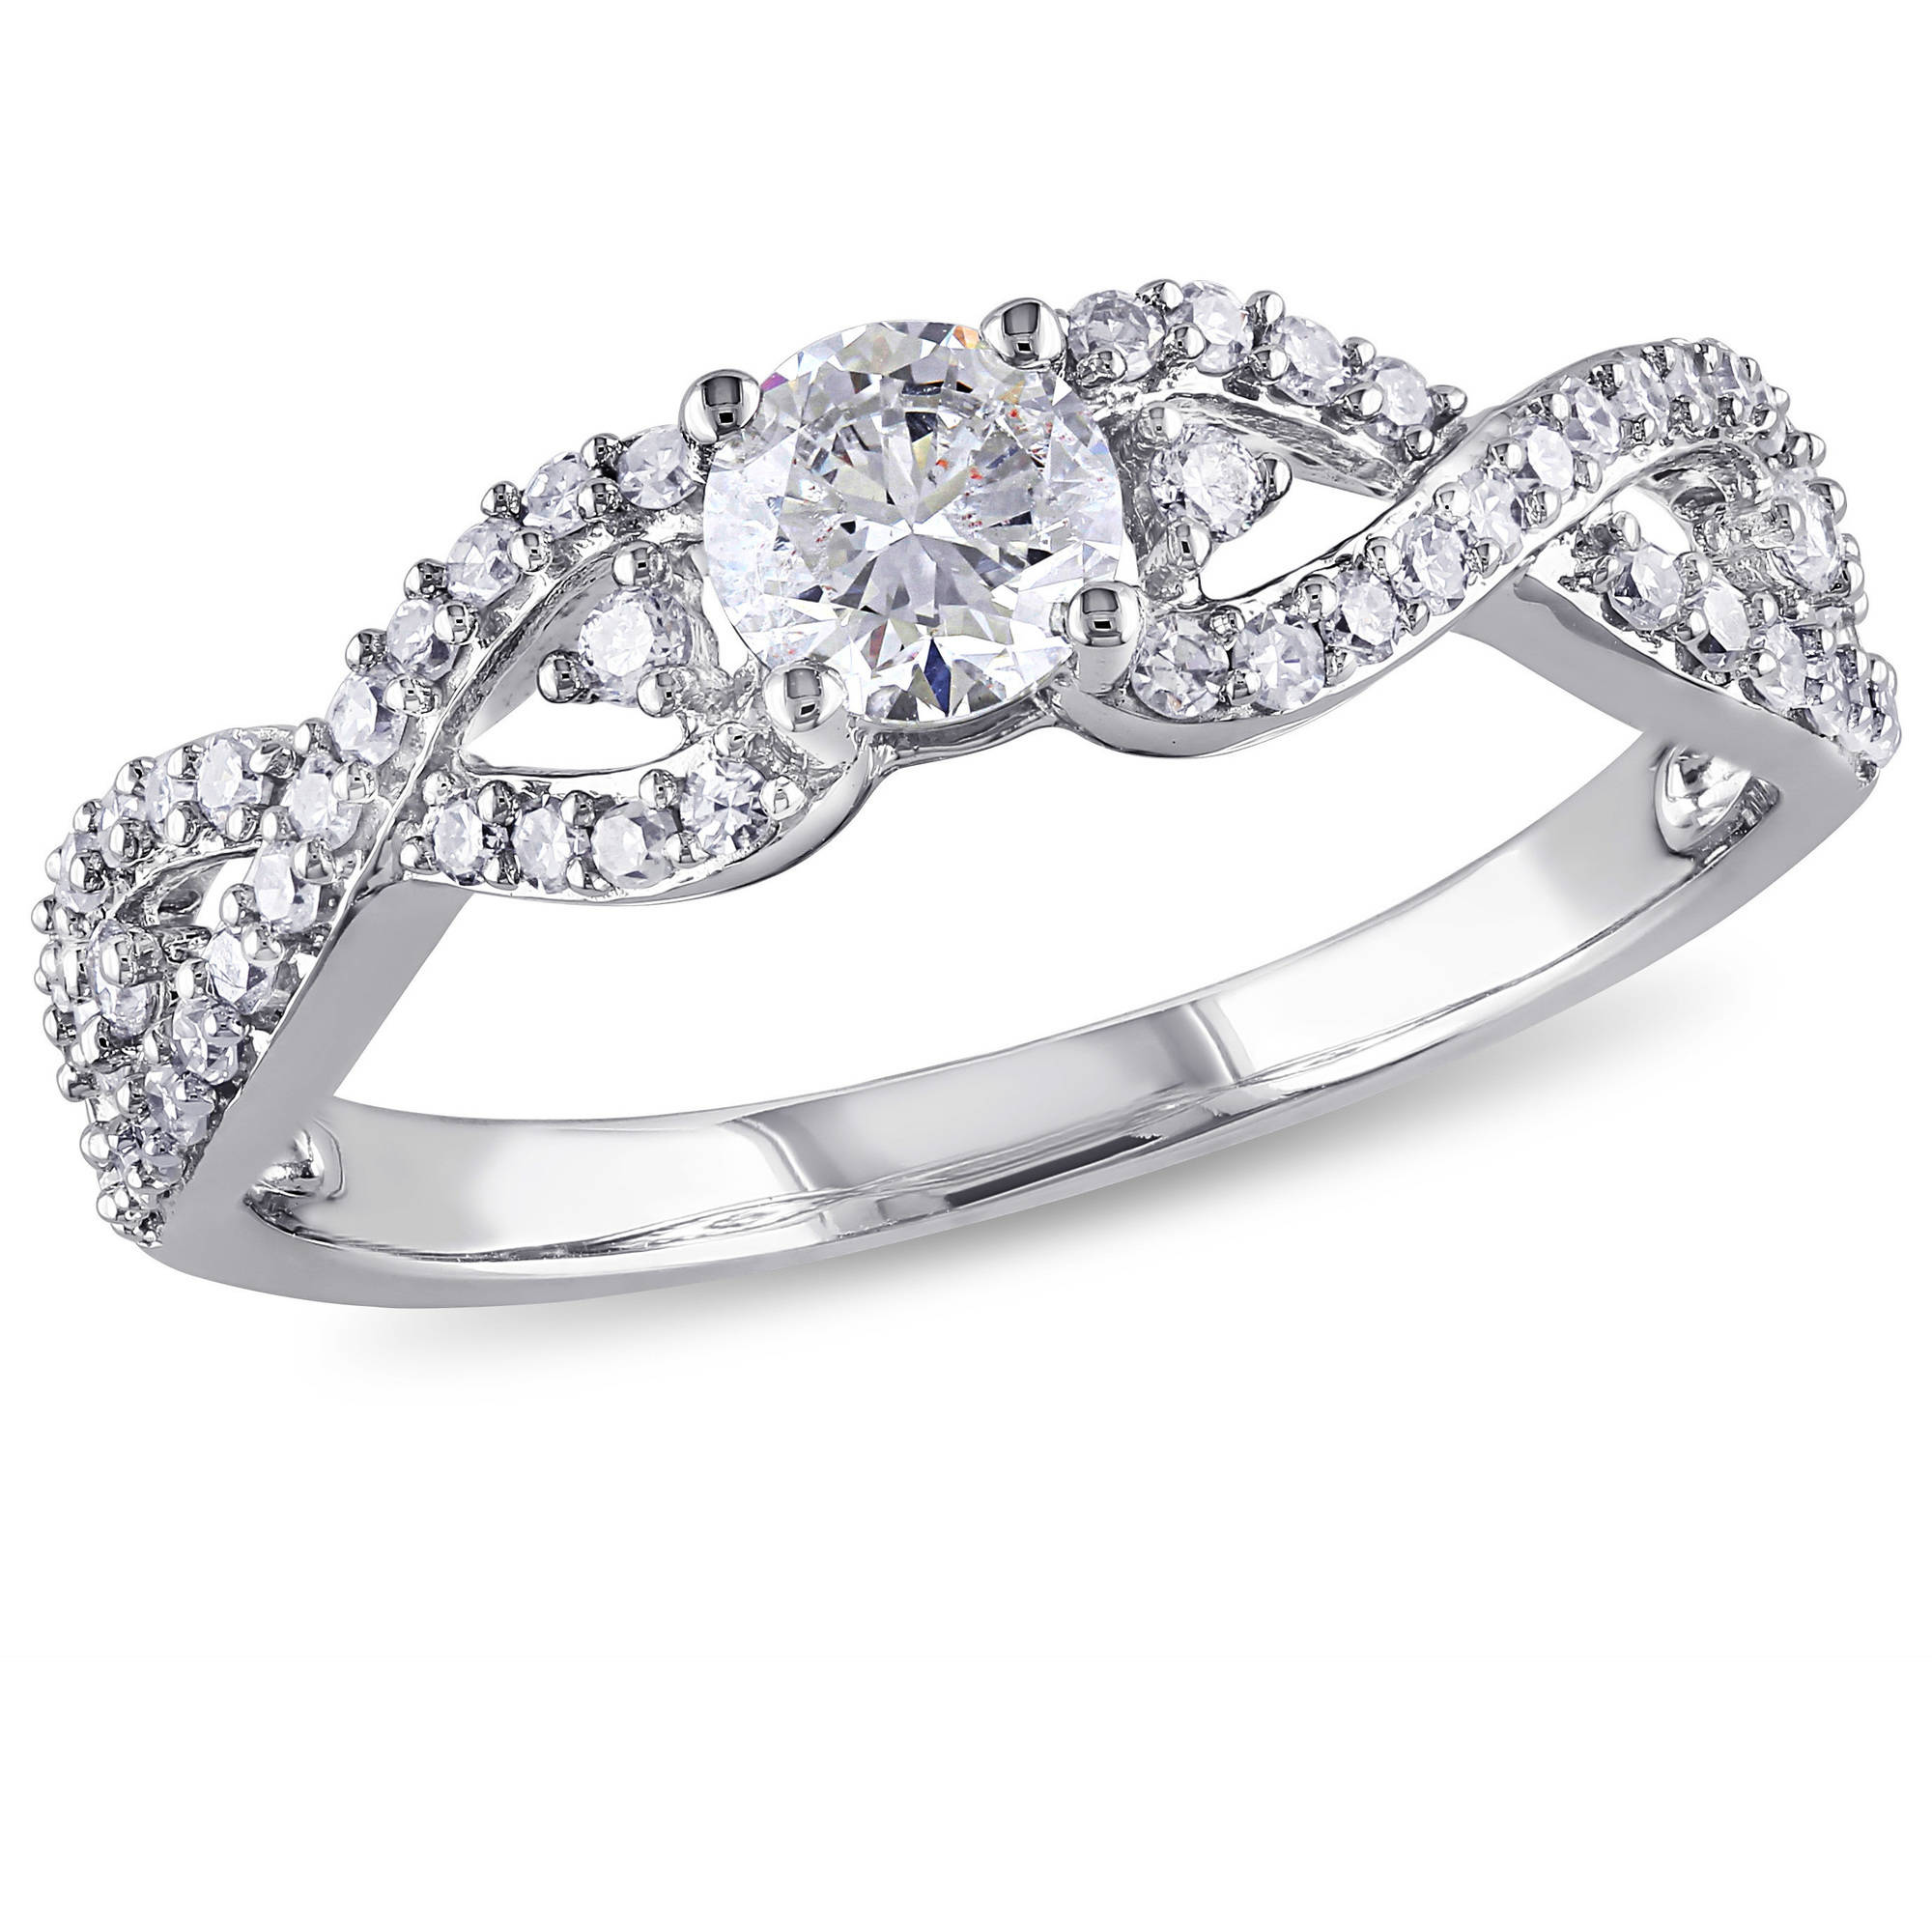 Miabella 3 4 Carat T.W. Diamond 14kt White Gold Infinity Engagement Ring by Generic